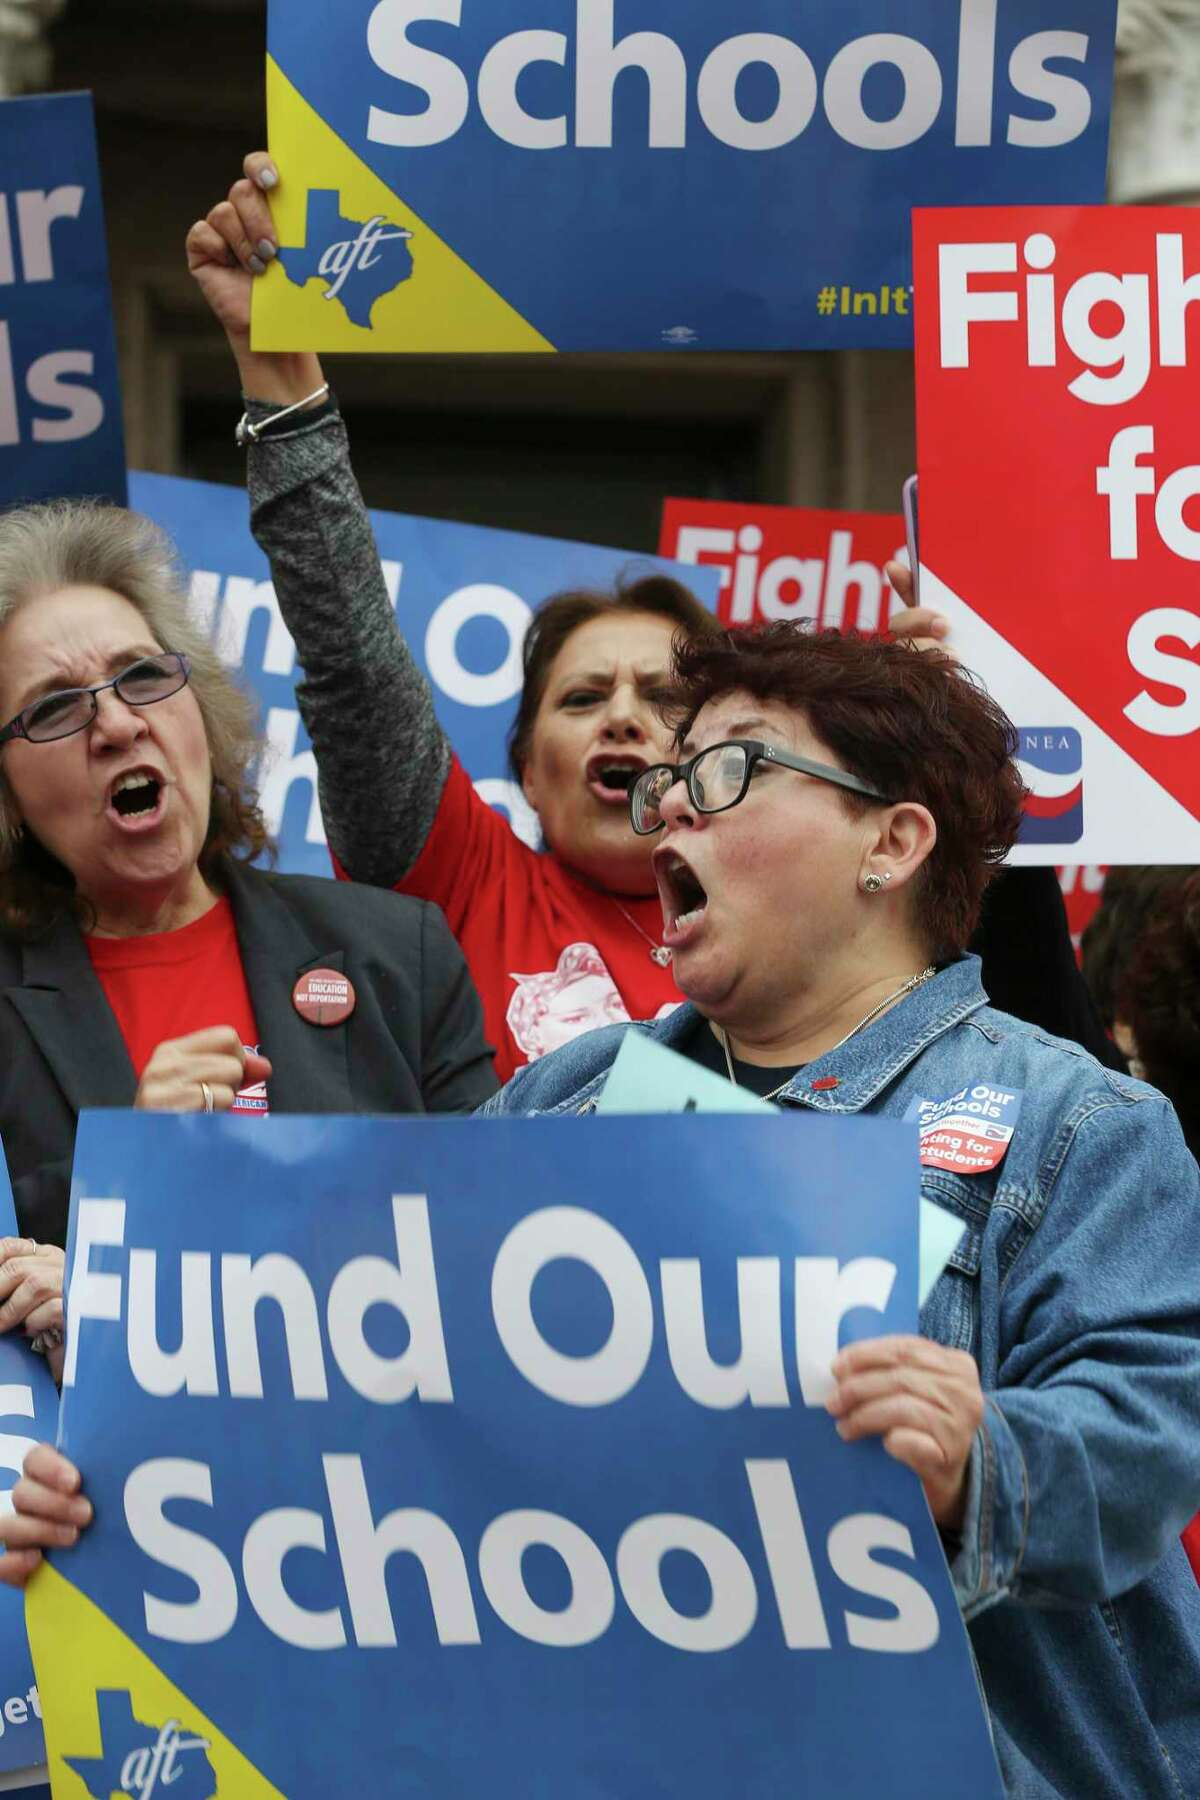 Protesters gather outside the Texas Capitol this spring to call for increased school funding. Lawmakers responded, but why not fund public education and increase teacher pay so protests and strikes don't happen, and students aren't affected?